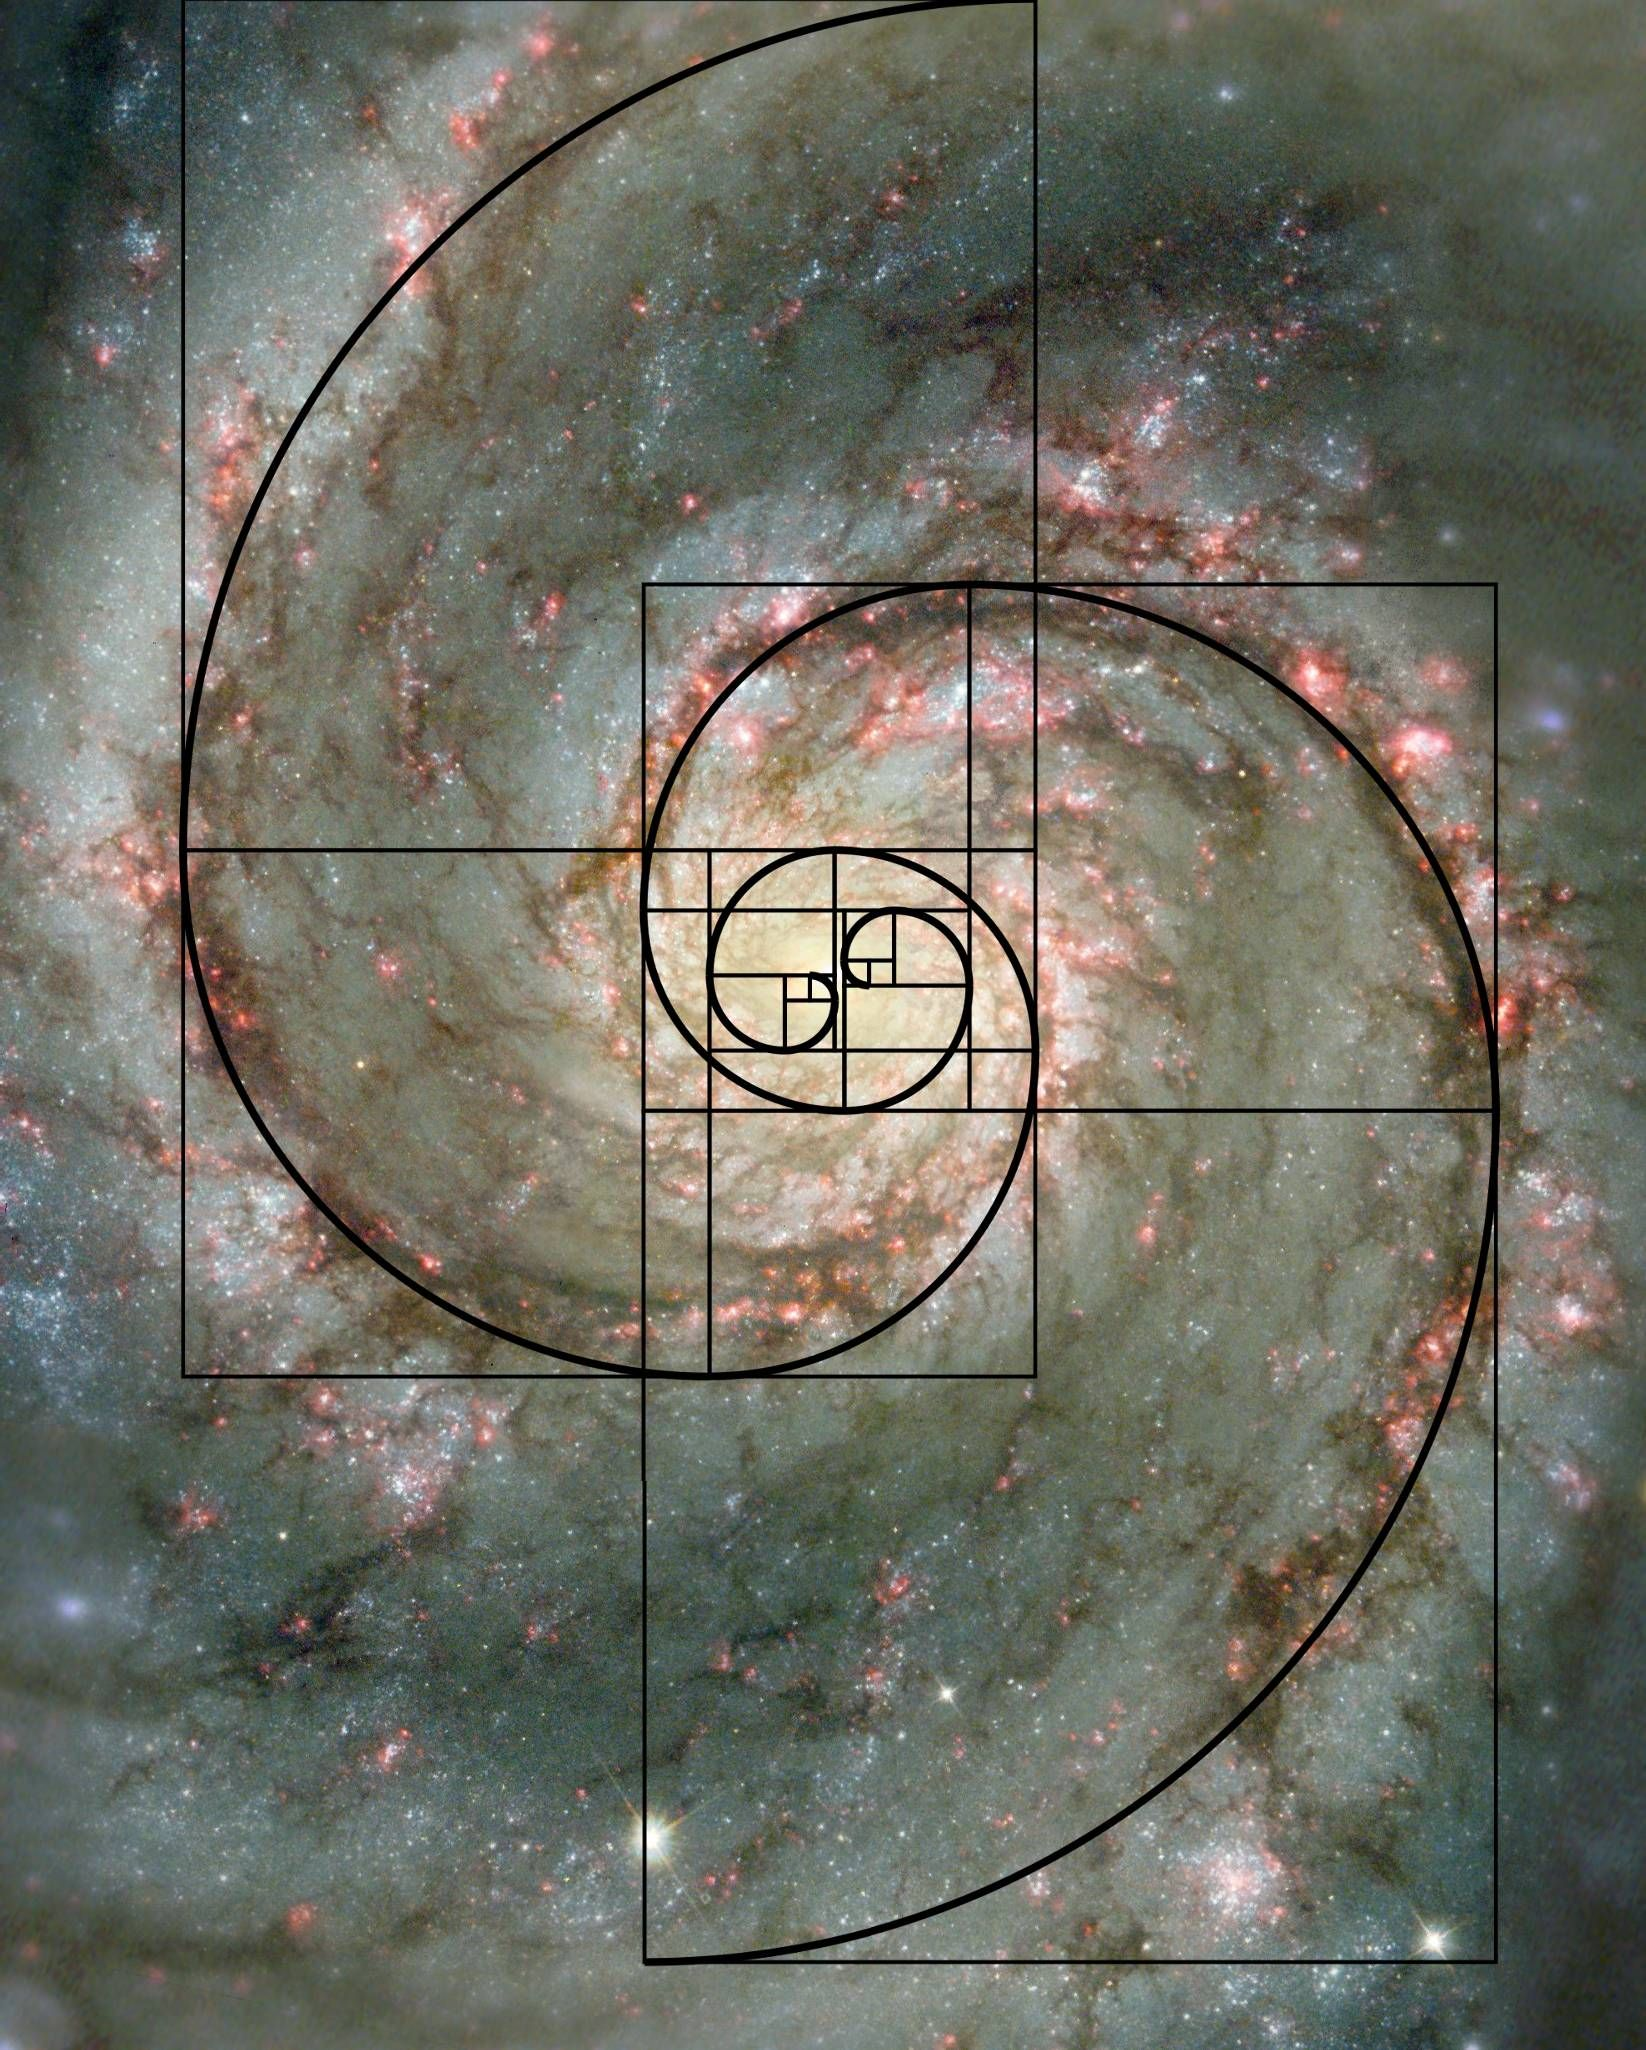 https://en.wikipedia.org/wiki/Fibonacci_number